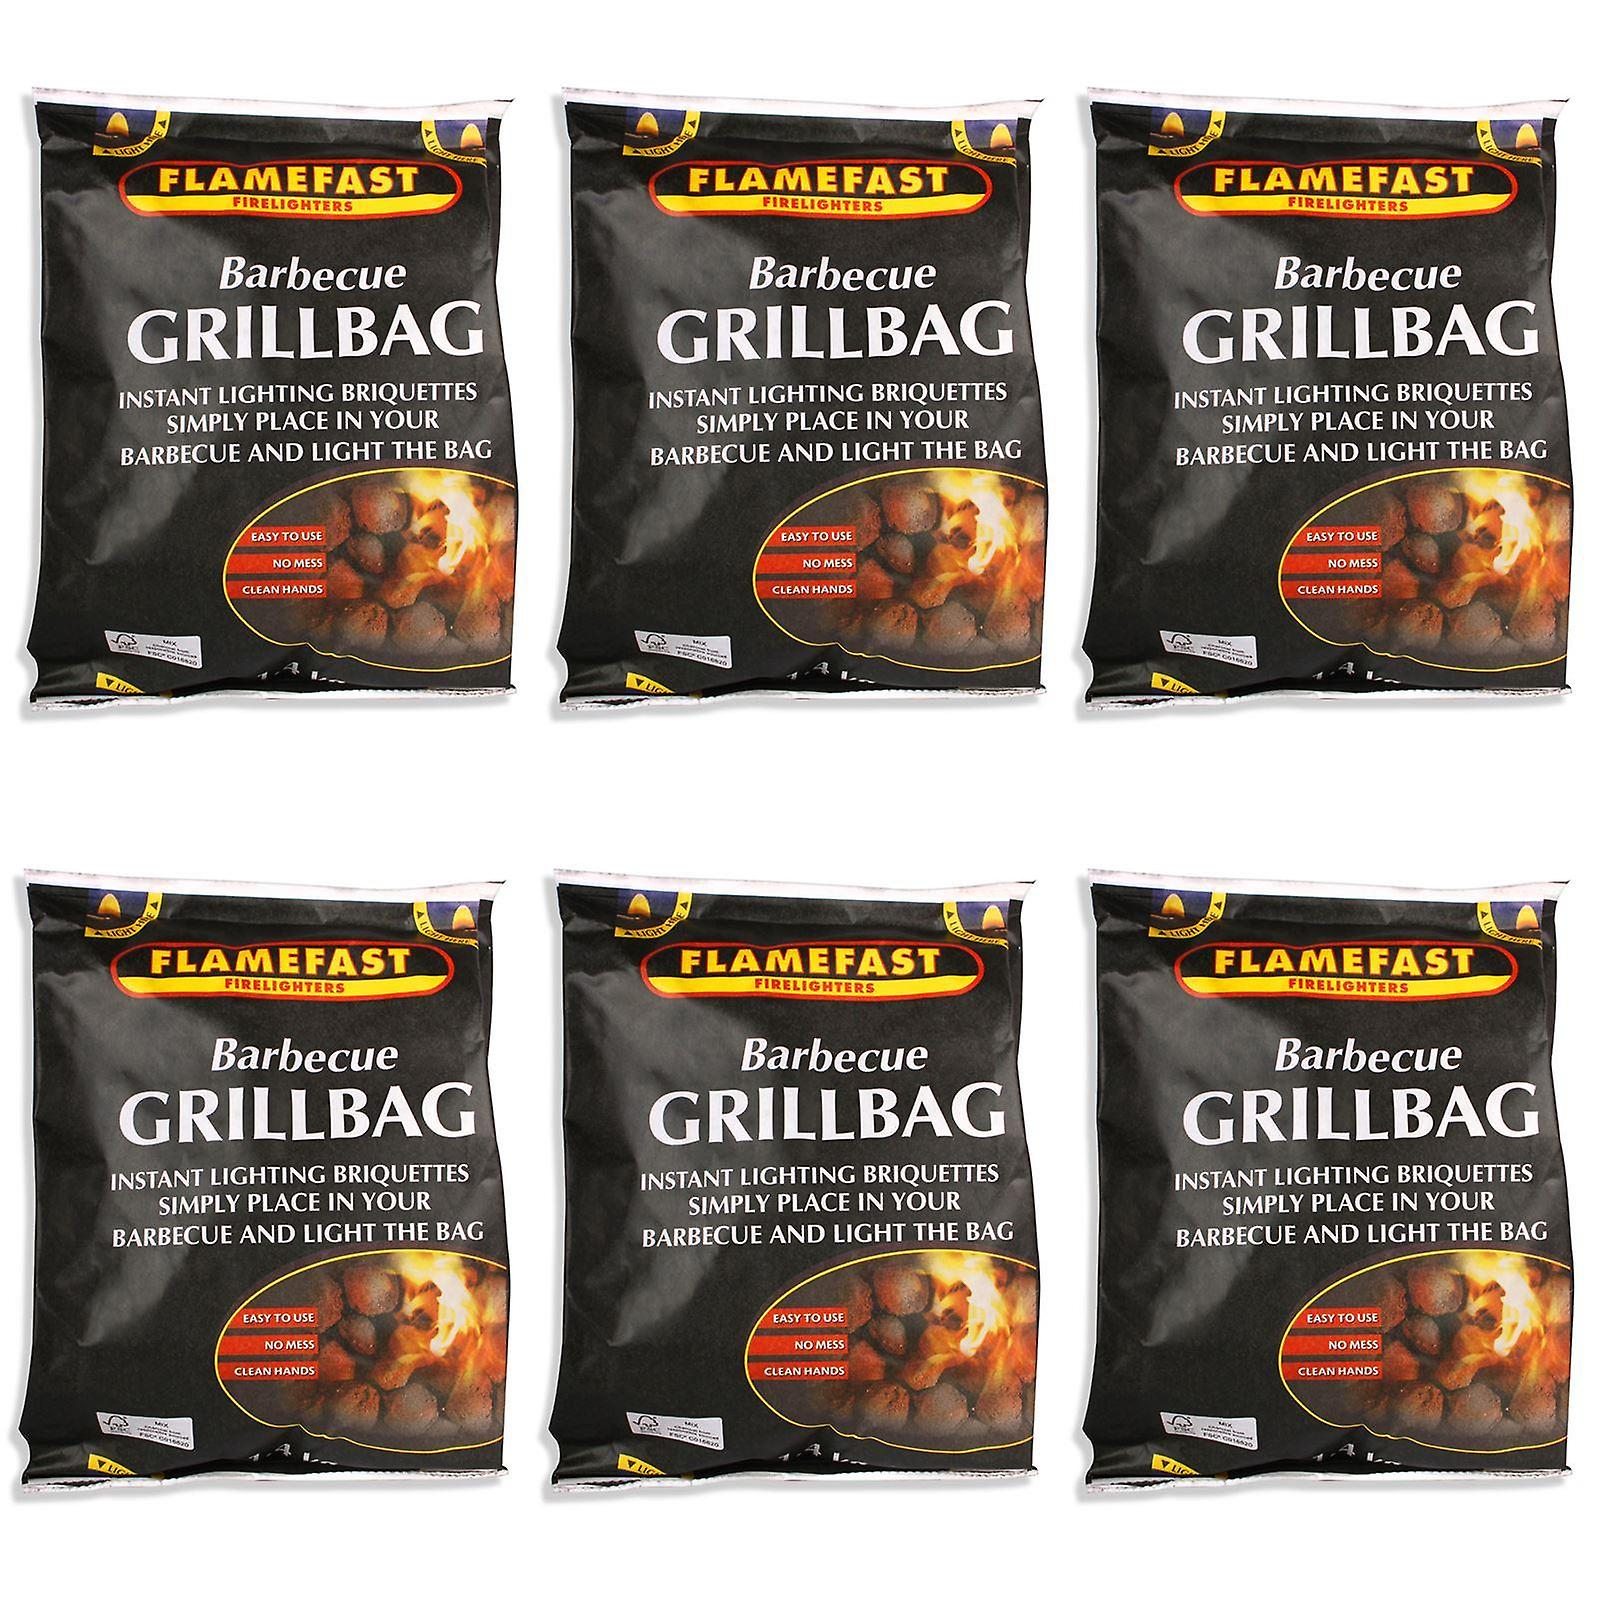 Flamefast Barbecue Grill Bag 1.4kg - 6 Pack